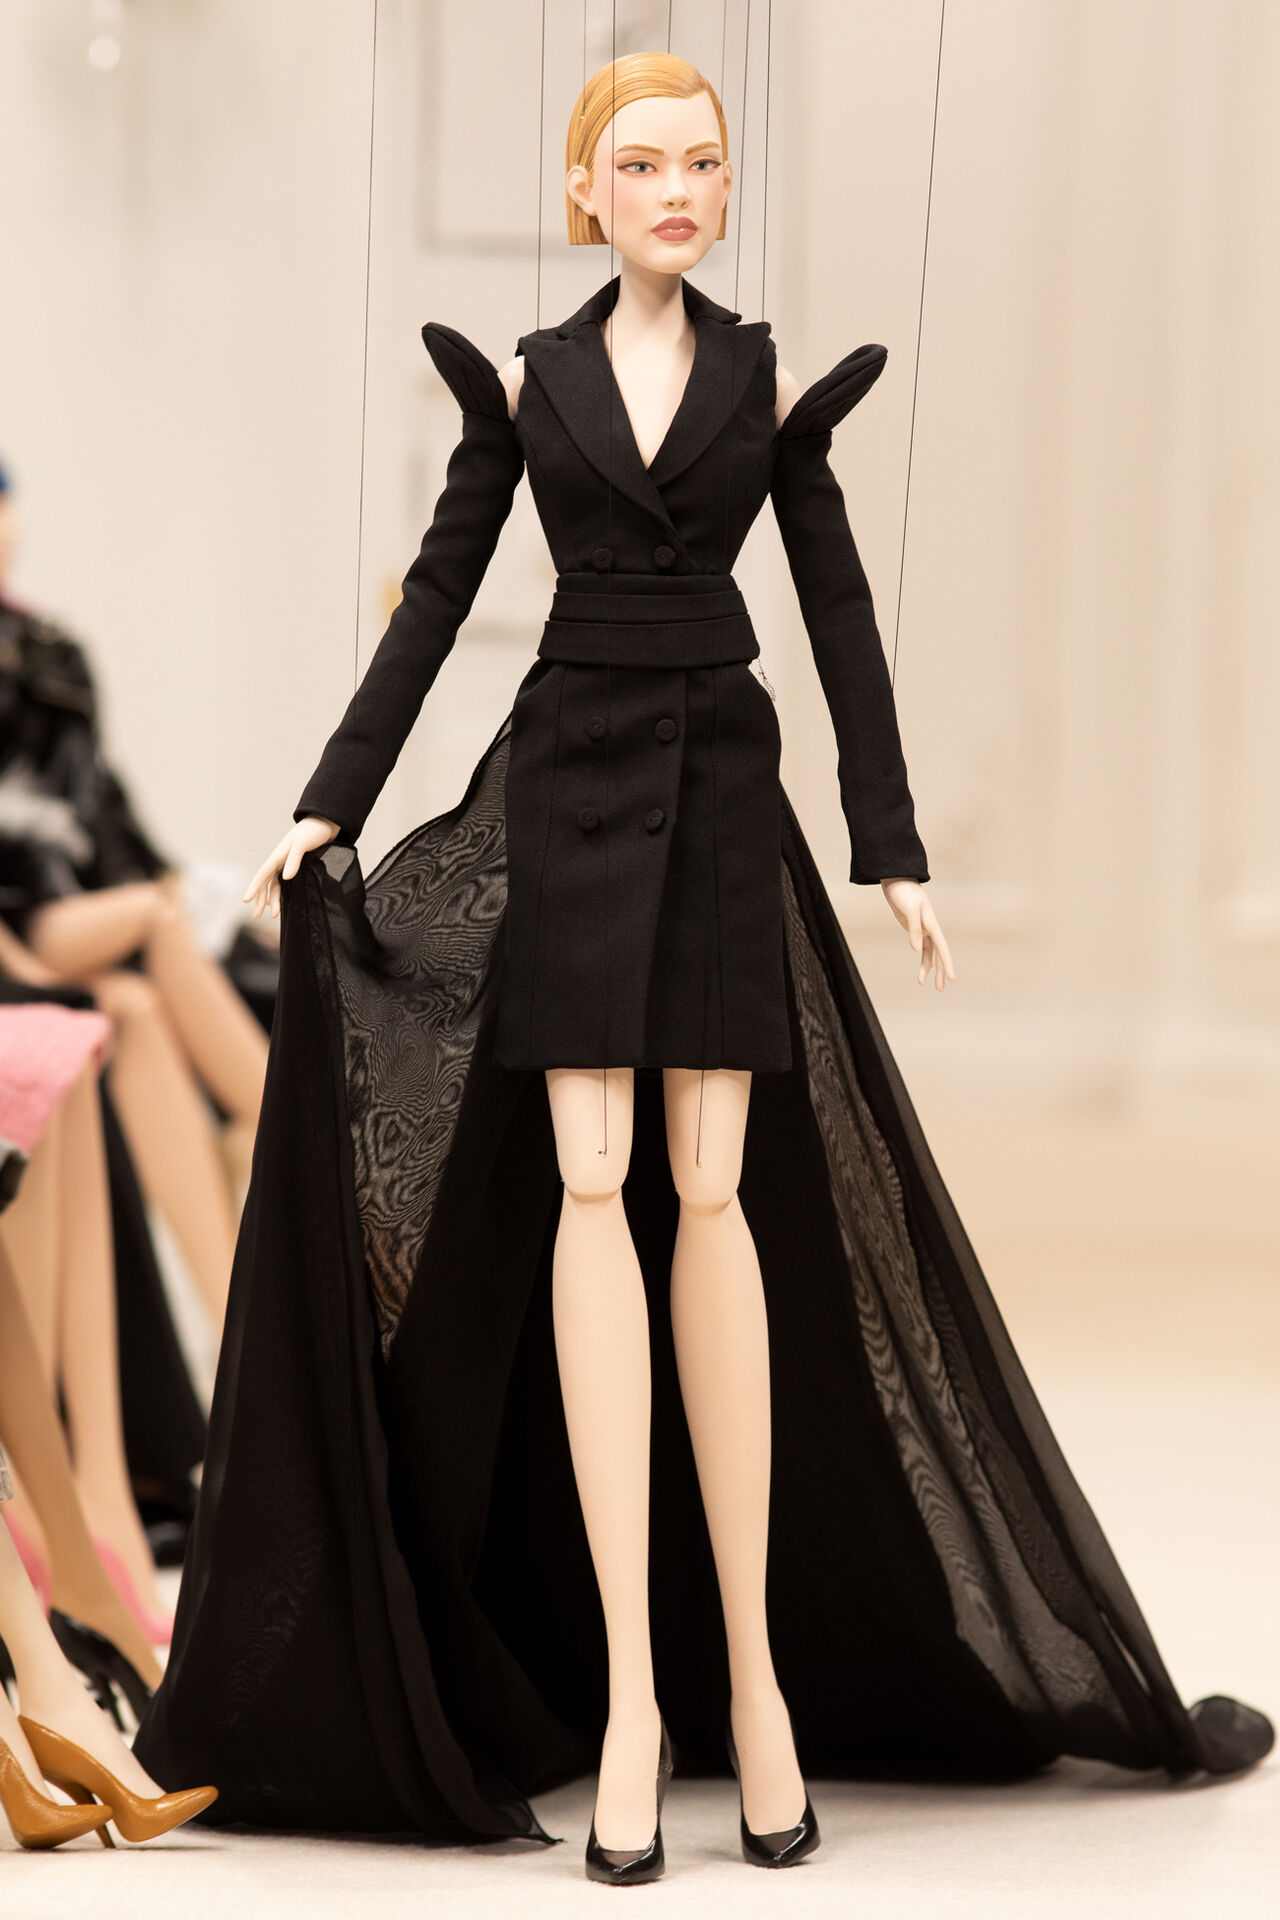 A puppet wearing a dress, walking down a runway.